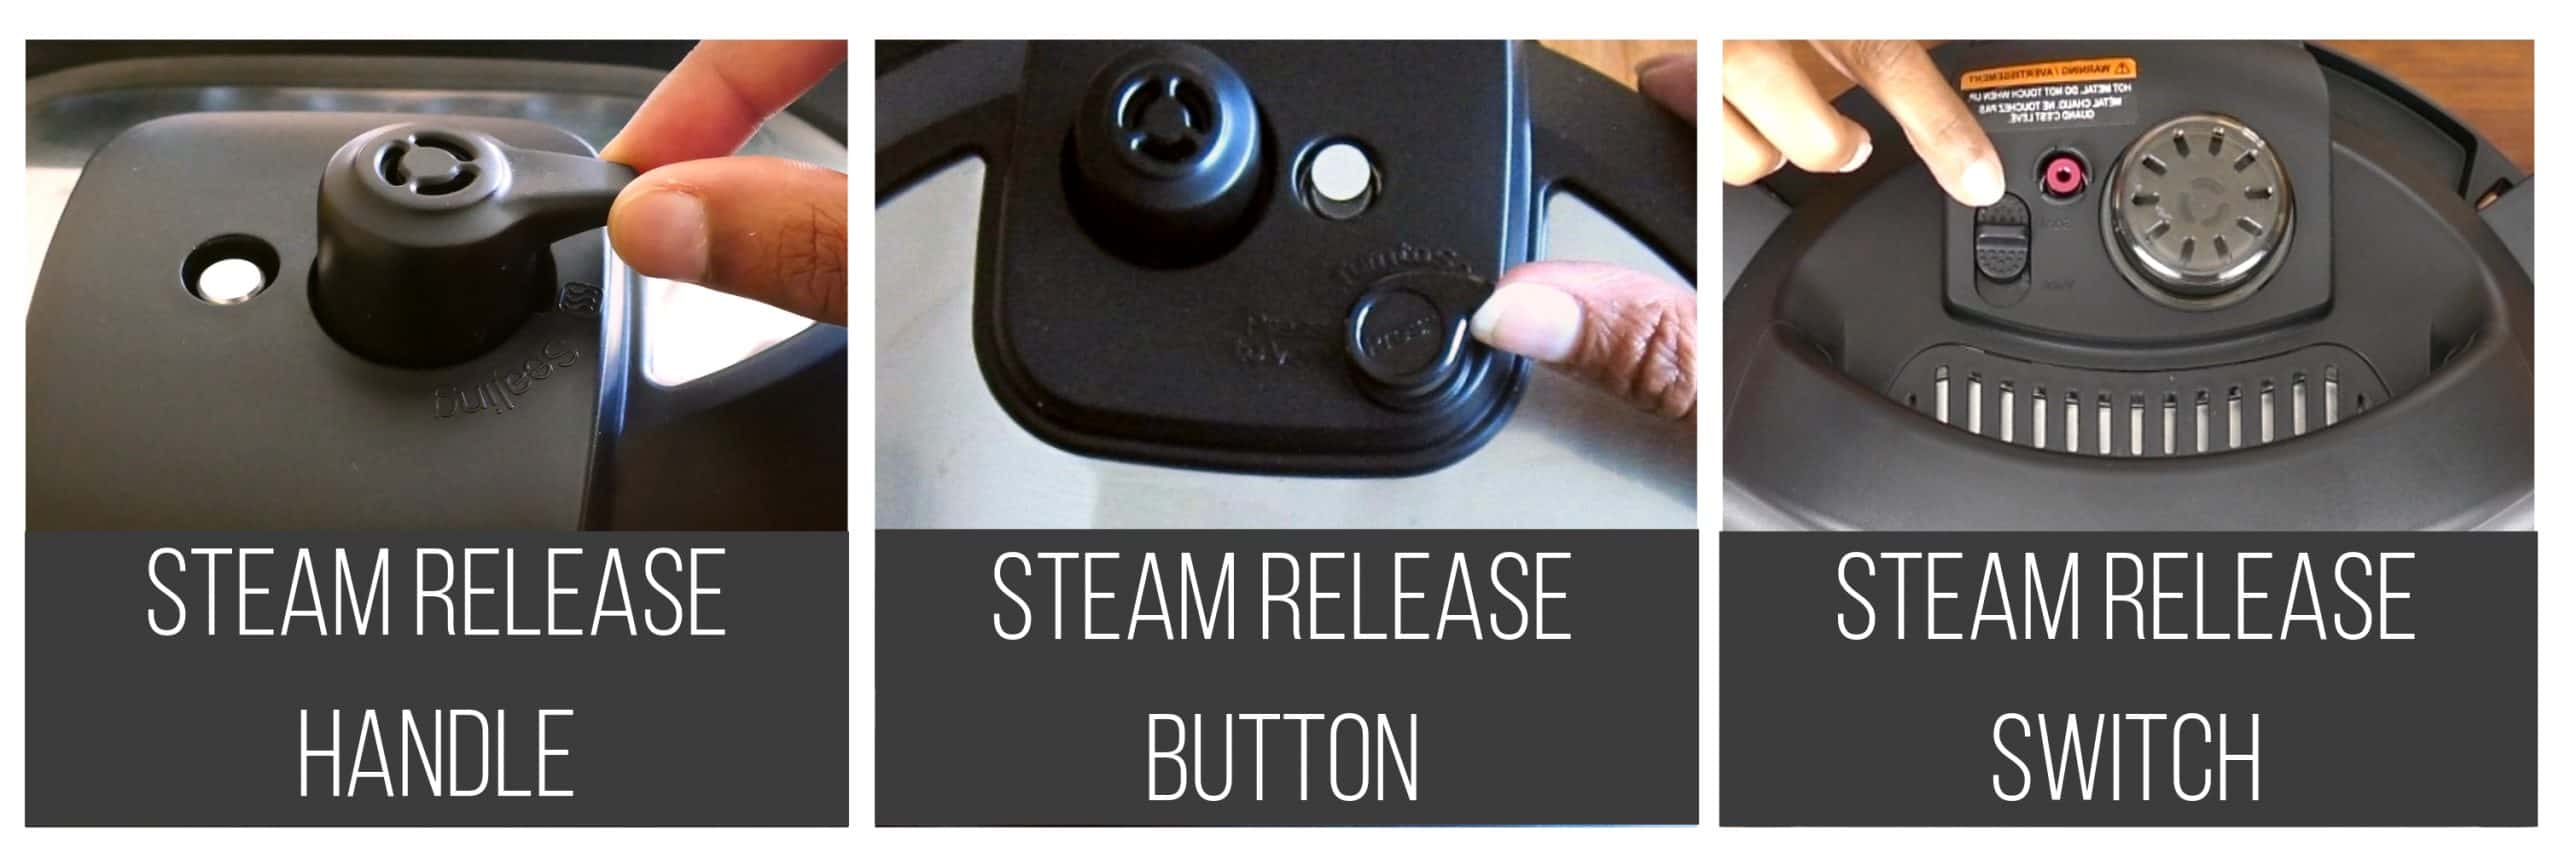 Collage of Instant Pot Steam Release Mechanisms: Handle Button and Switch